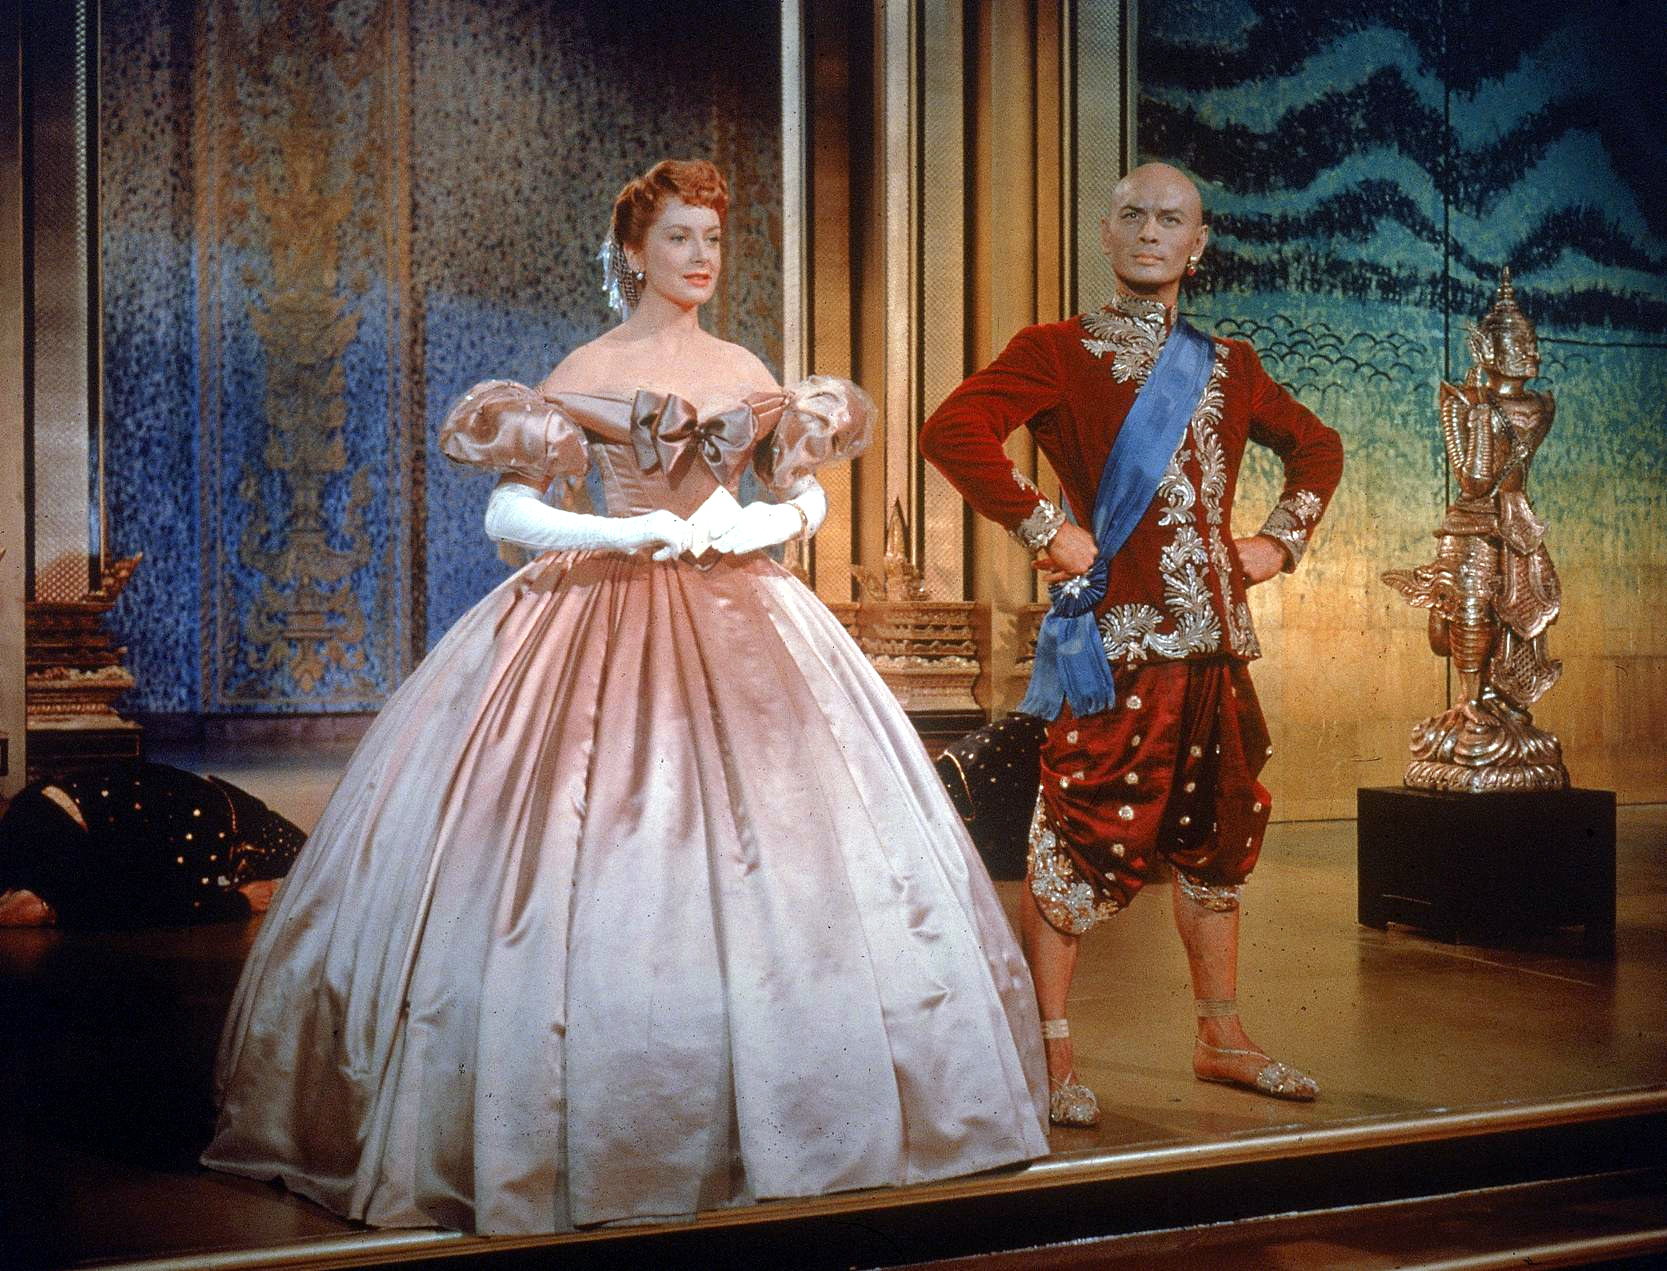 Deborah Kerr and Yul Brynner in 1956's The King And I